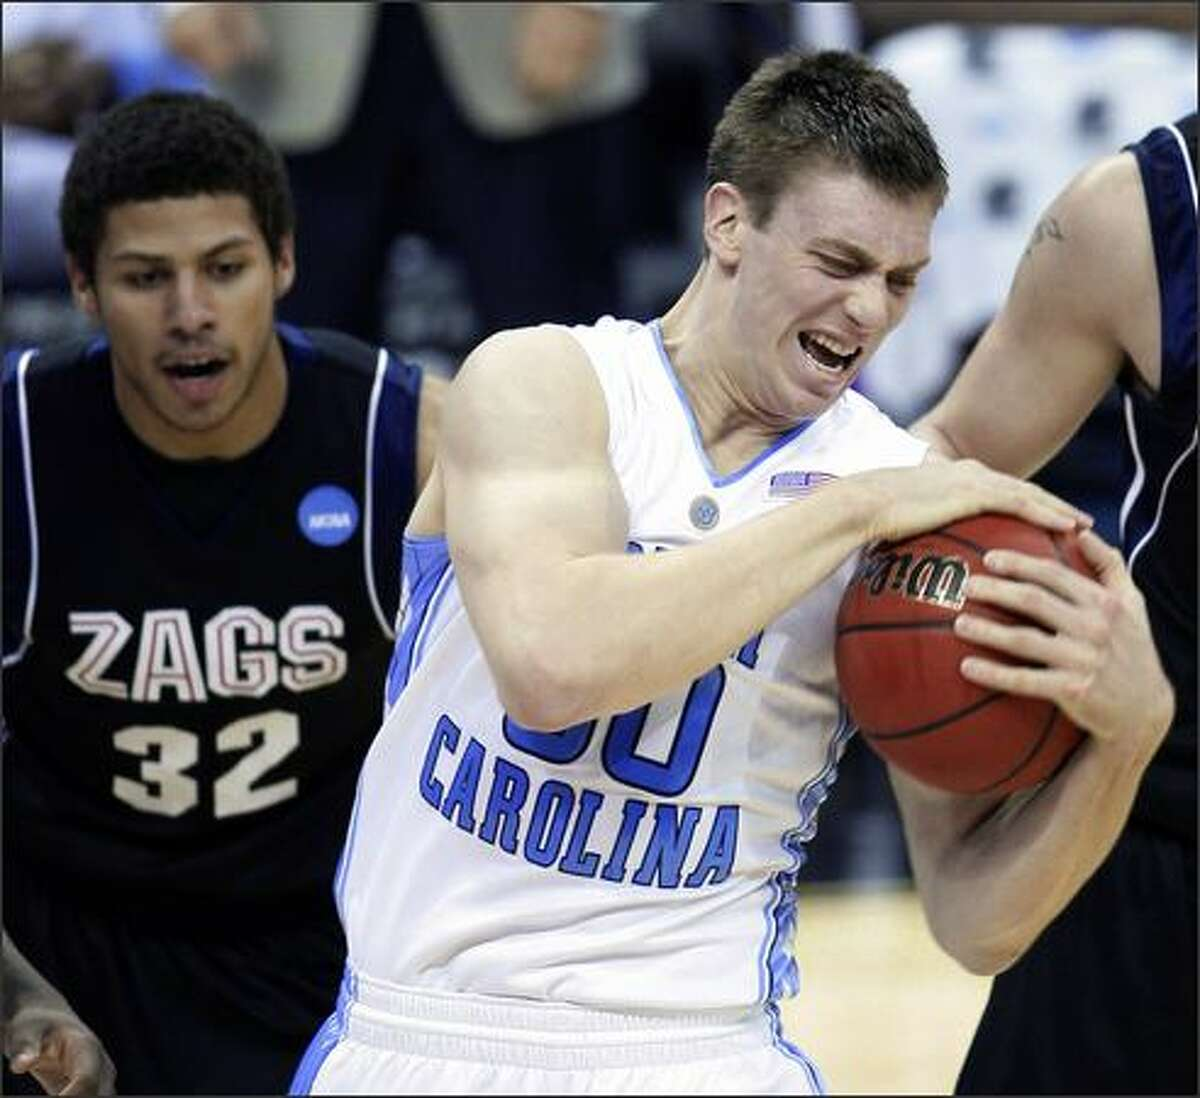 North Carolina forward Tyler Hansbrough (50) pulls a rebound away from Gonzaga guard Steven Gray (32) in the first half of an NCAA tournament regional semifinal game in Memphis, Tenn., Friday, March 27, 2009. (AP Photo/Matt Slocum)